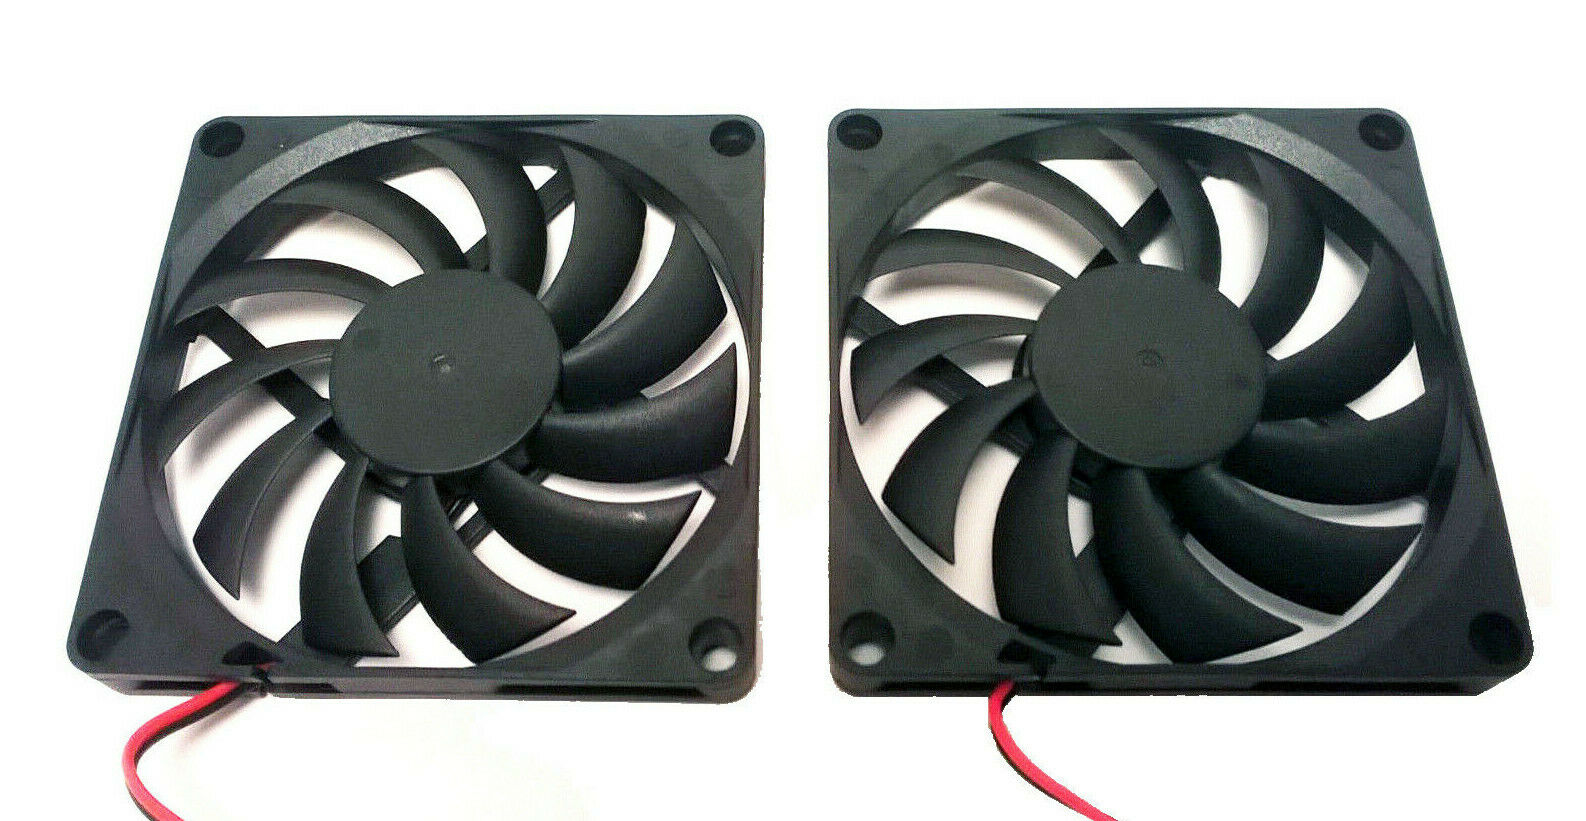 LOT of 2 80x80x10mm 5v 0.25A 2 Pin 80mm Cooling Fan Computer